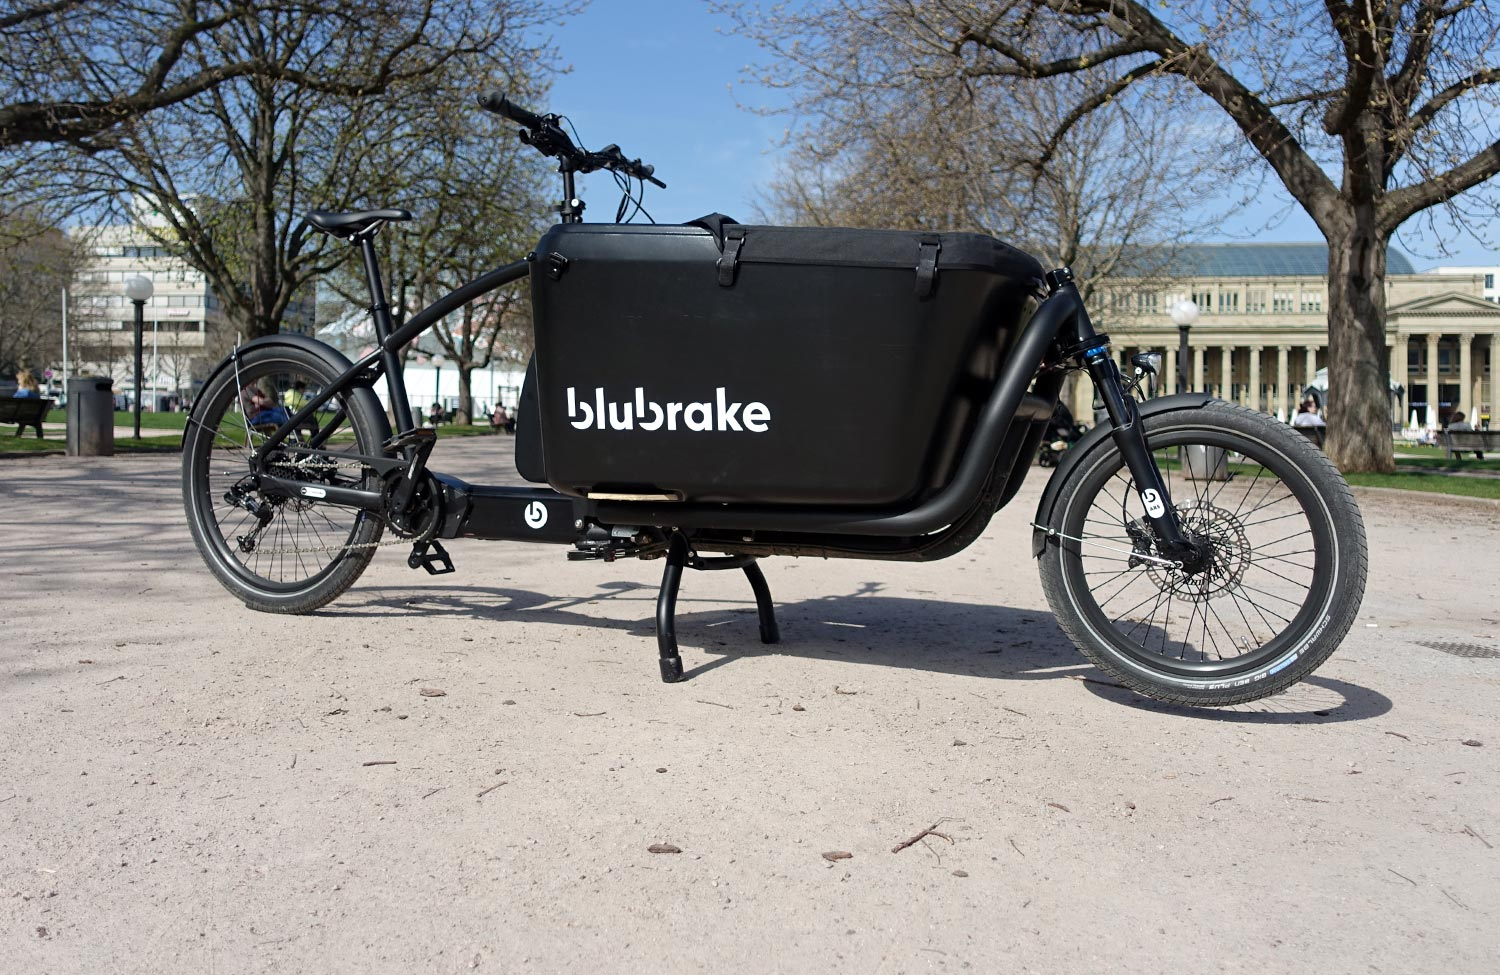 The blubrake anti-lock braking system for bicycles tested